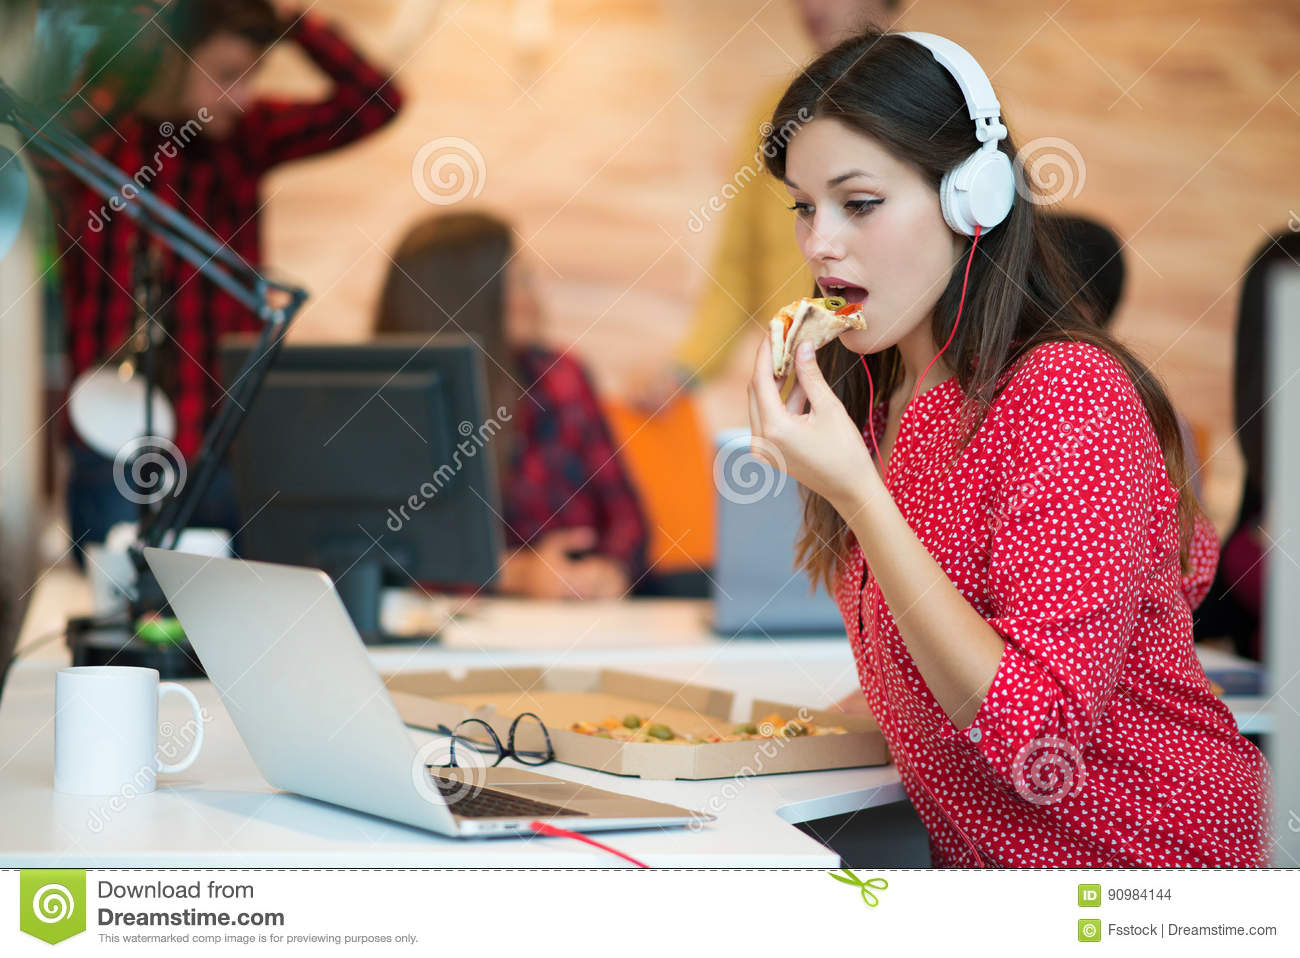 Young Female In Call Center Team Eating Pizza Stock Photo Image Of Coworker Lunch 90984144